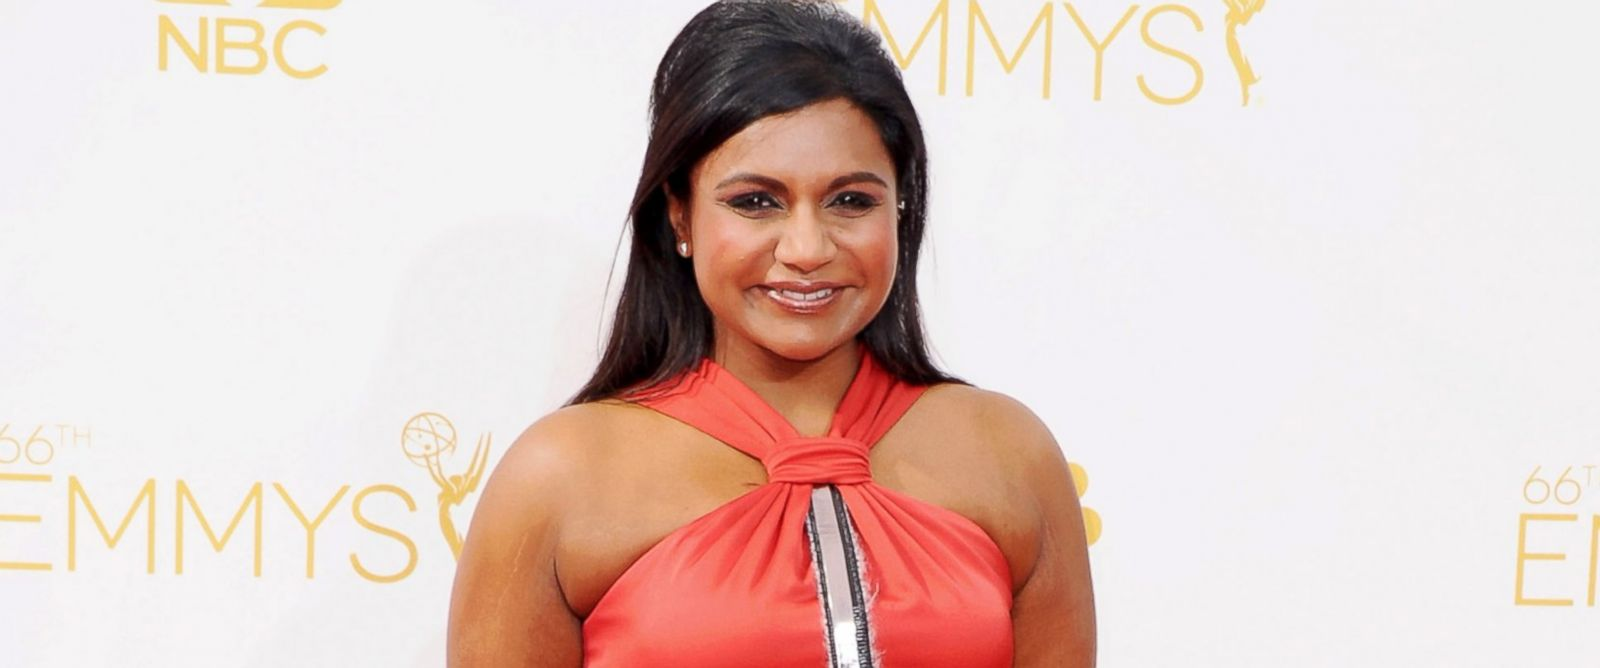 PHOTO: Mindy Kaling arrives at the 66th Annual Primetime Emmy Awards at Nokia Theatre L.A. Live, Aug. 25, 2014, in Los Angeles.